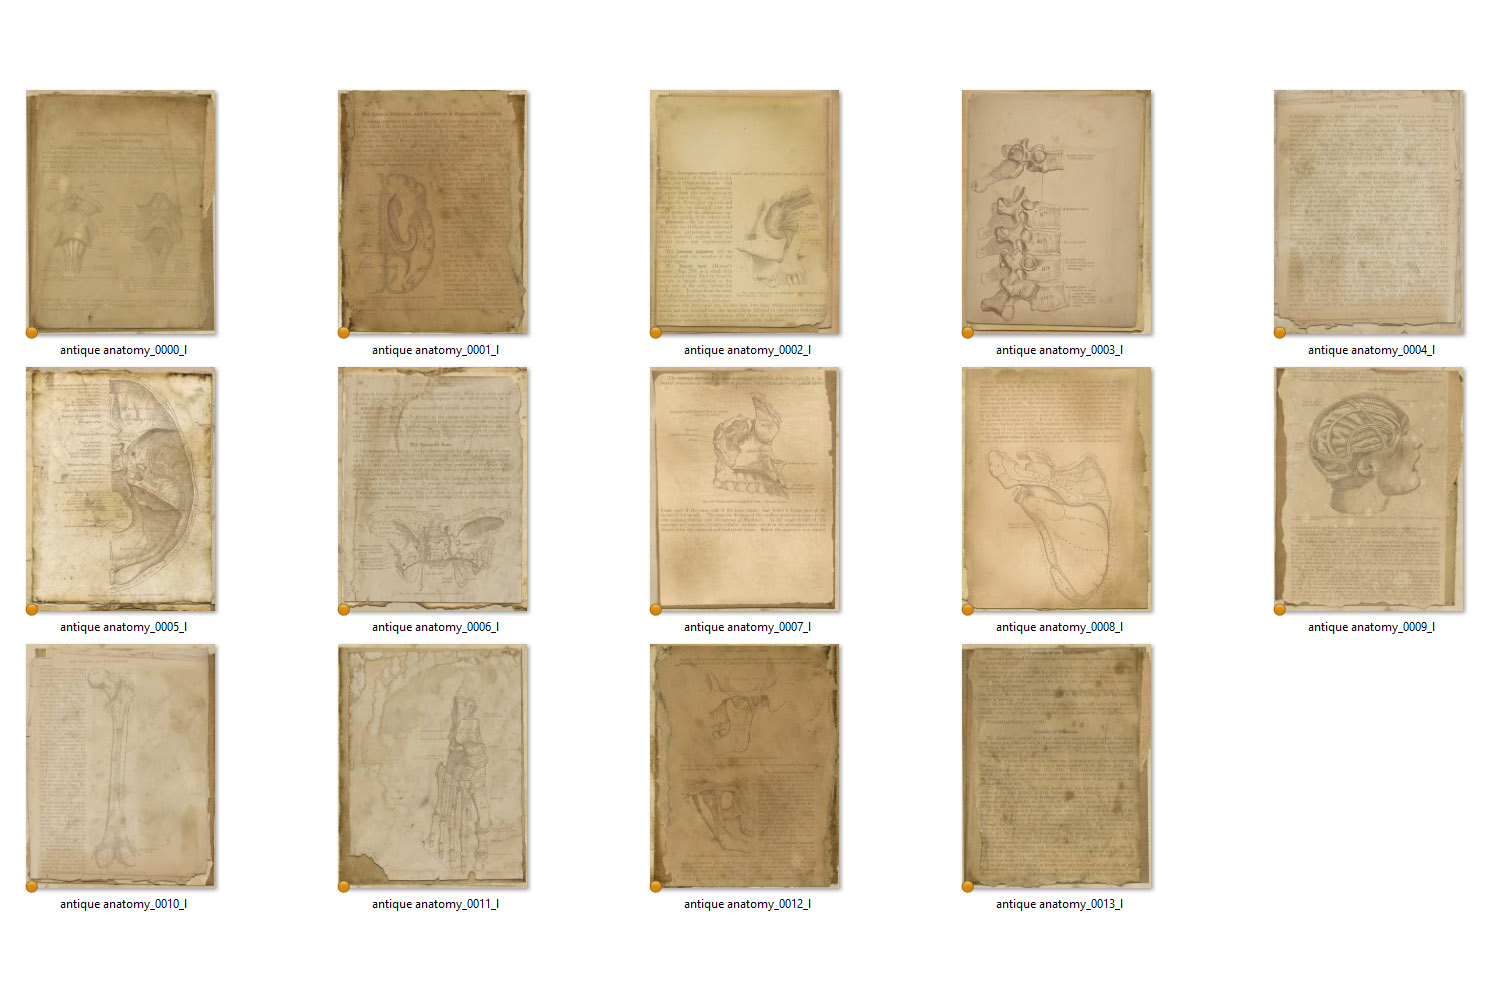 Antique Anatomy Notebook Paper example image 4